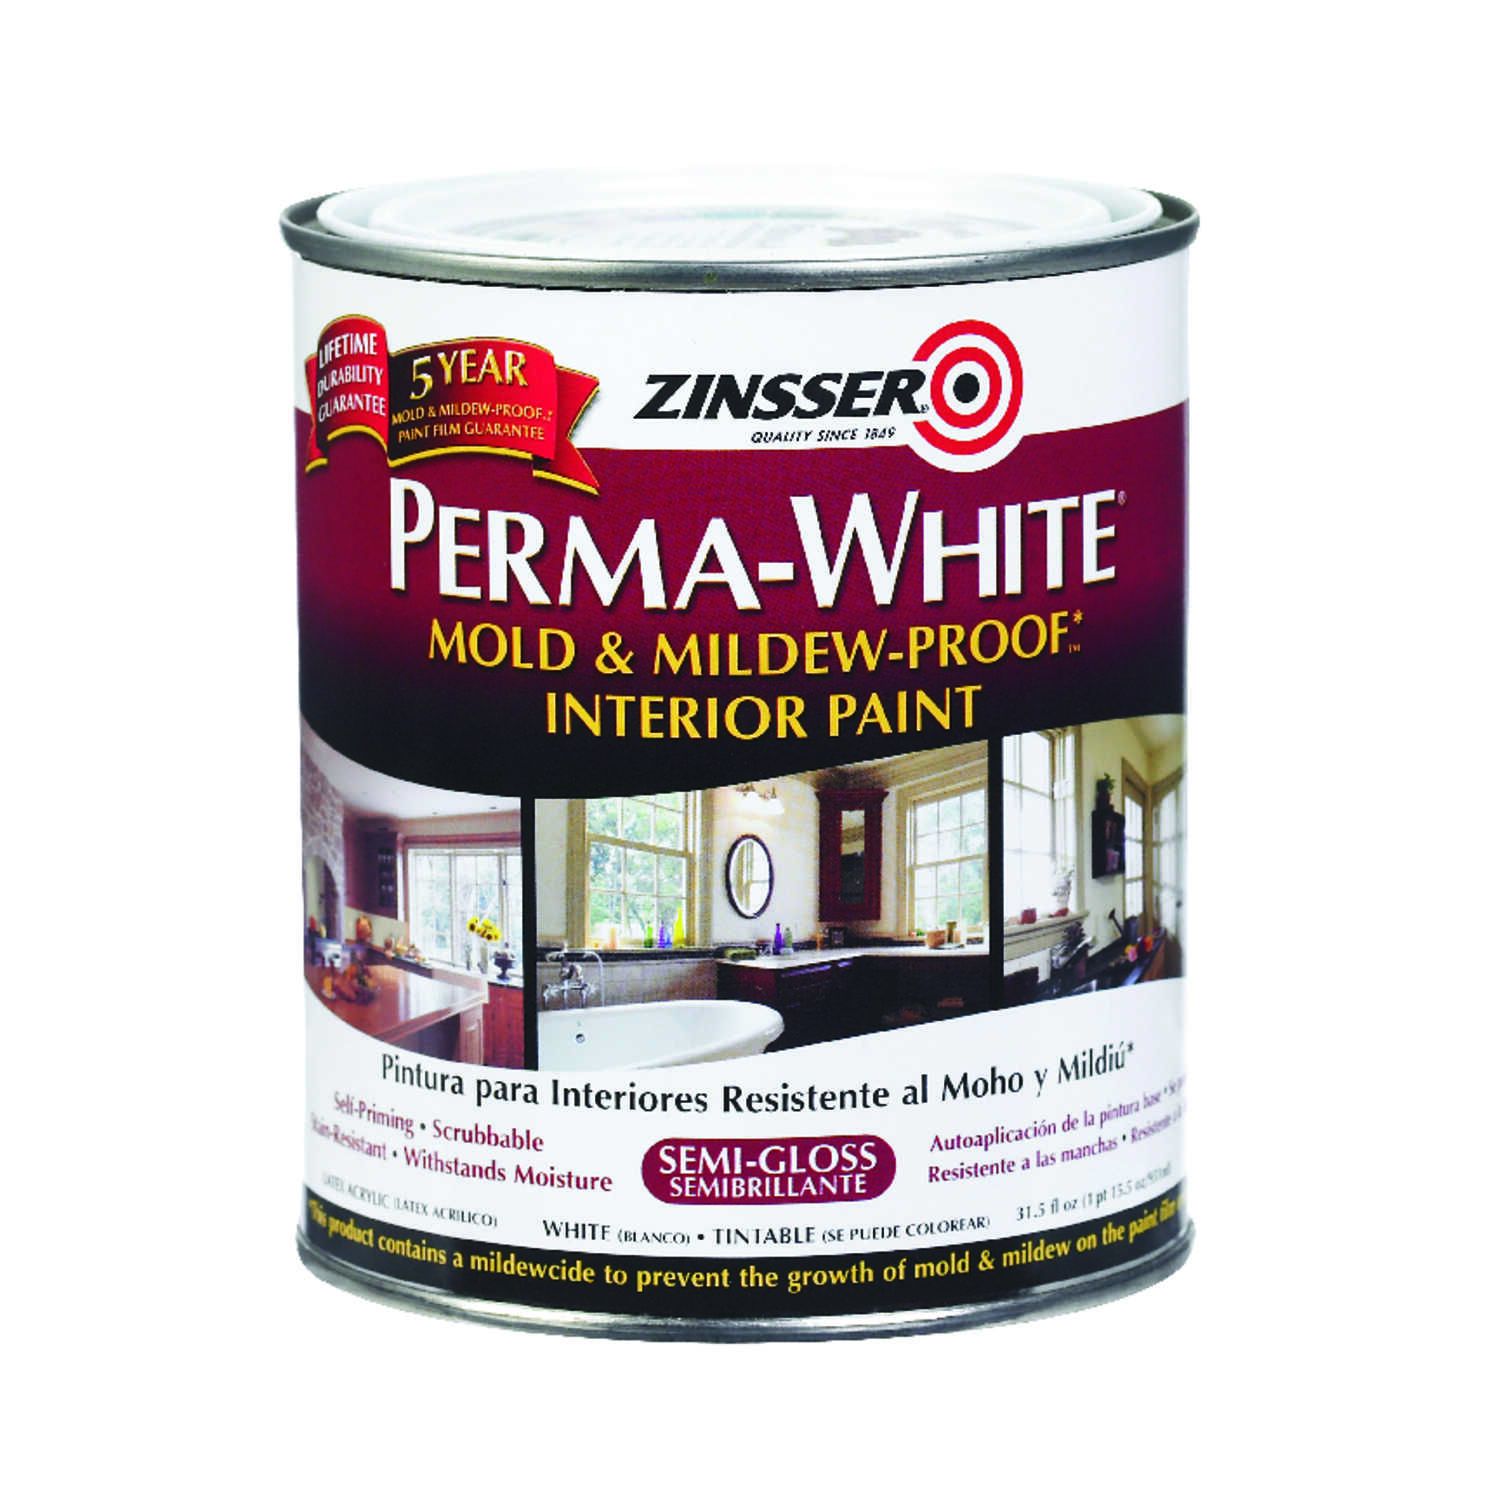 Zinsser  Perma-White  Semi-Gloss  White  Mold and Mildew-Proof Paint  1 qt.